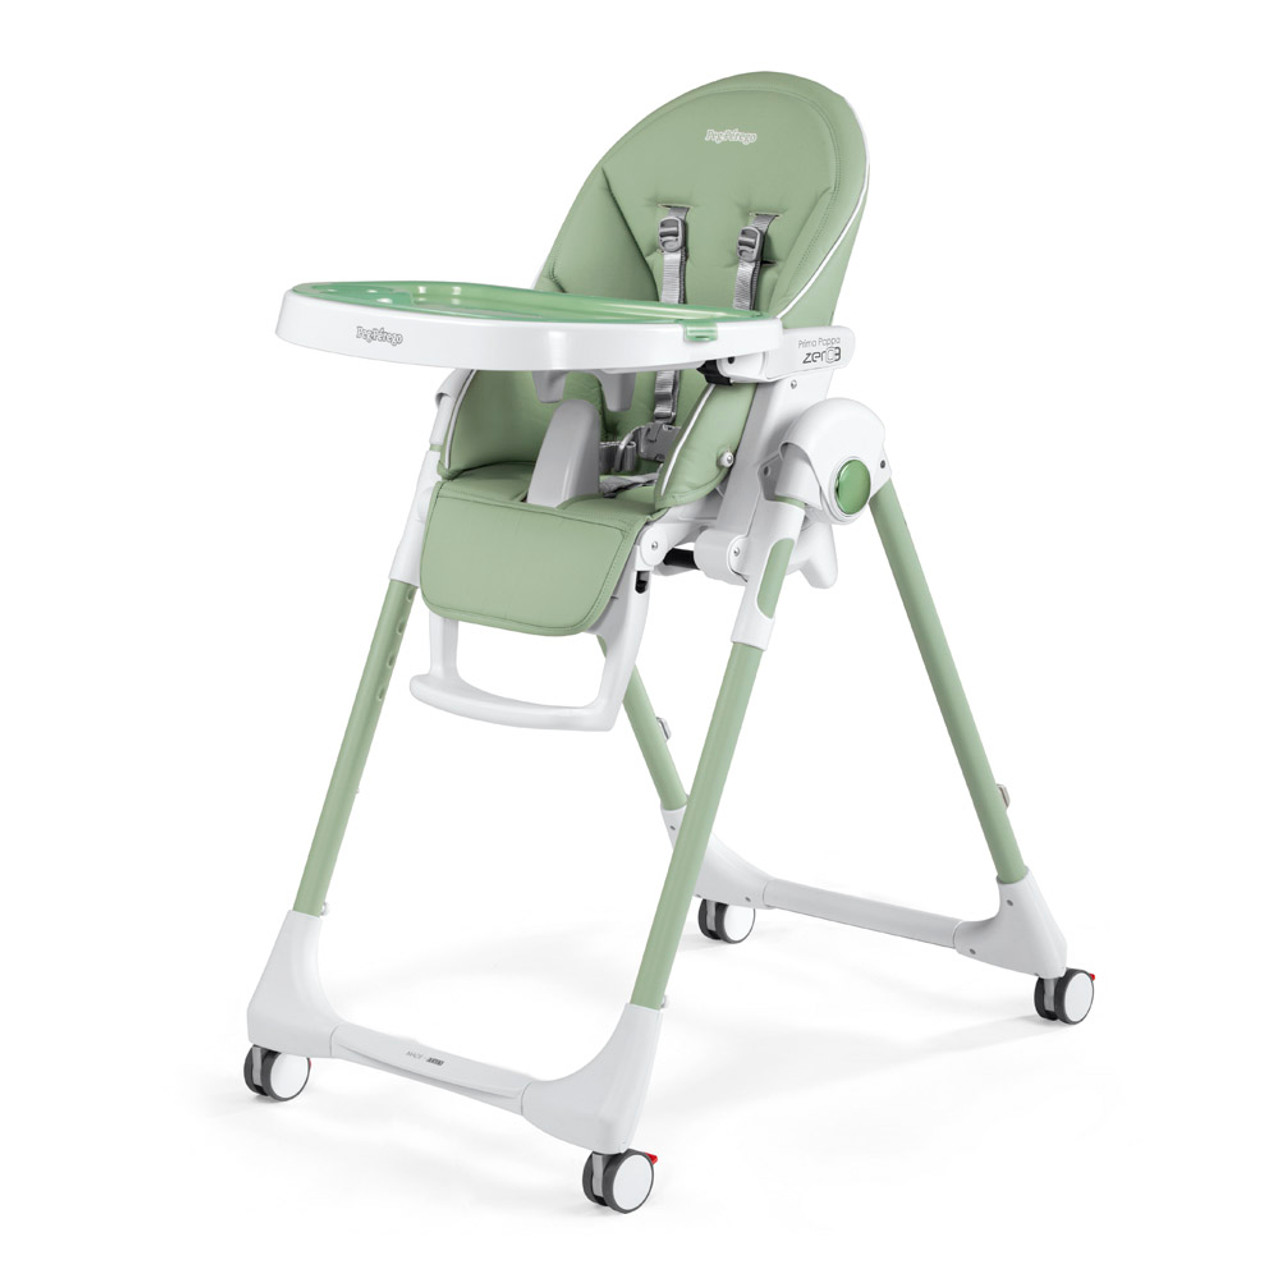 Perego High Chair Peg Perego Prima Pappa Zero 3 High Chair Mint